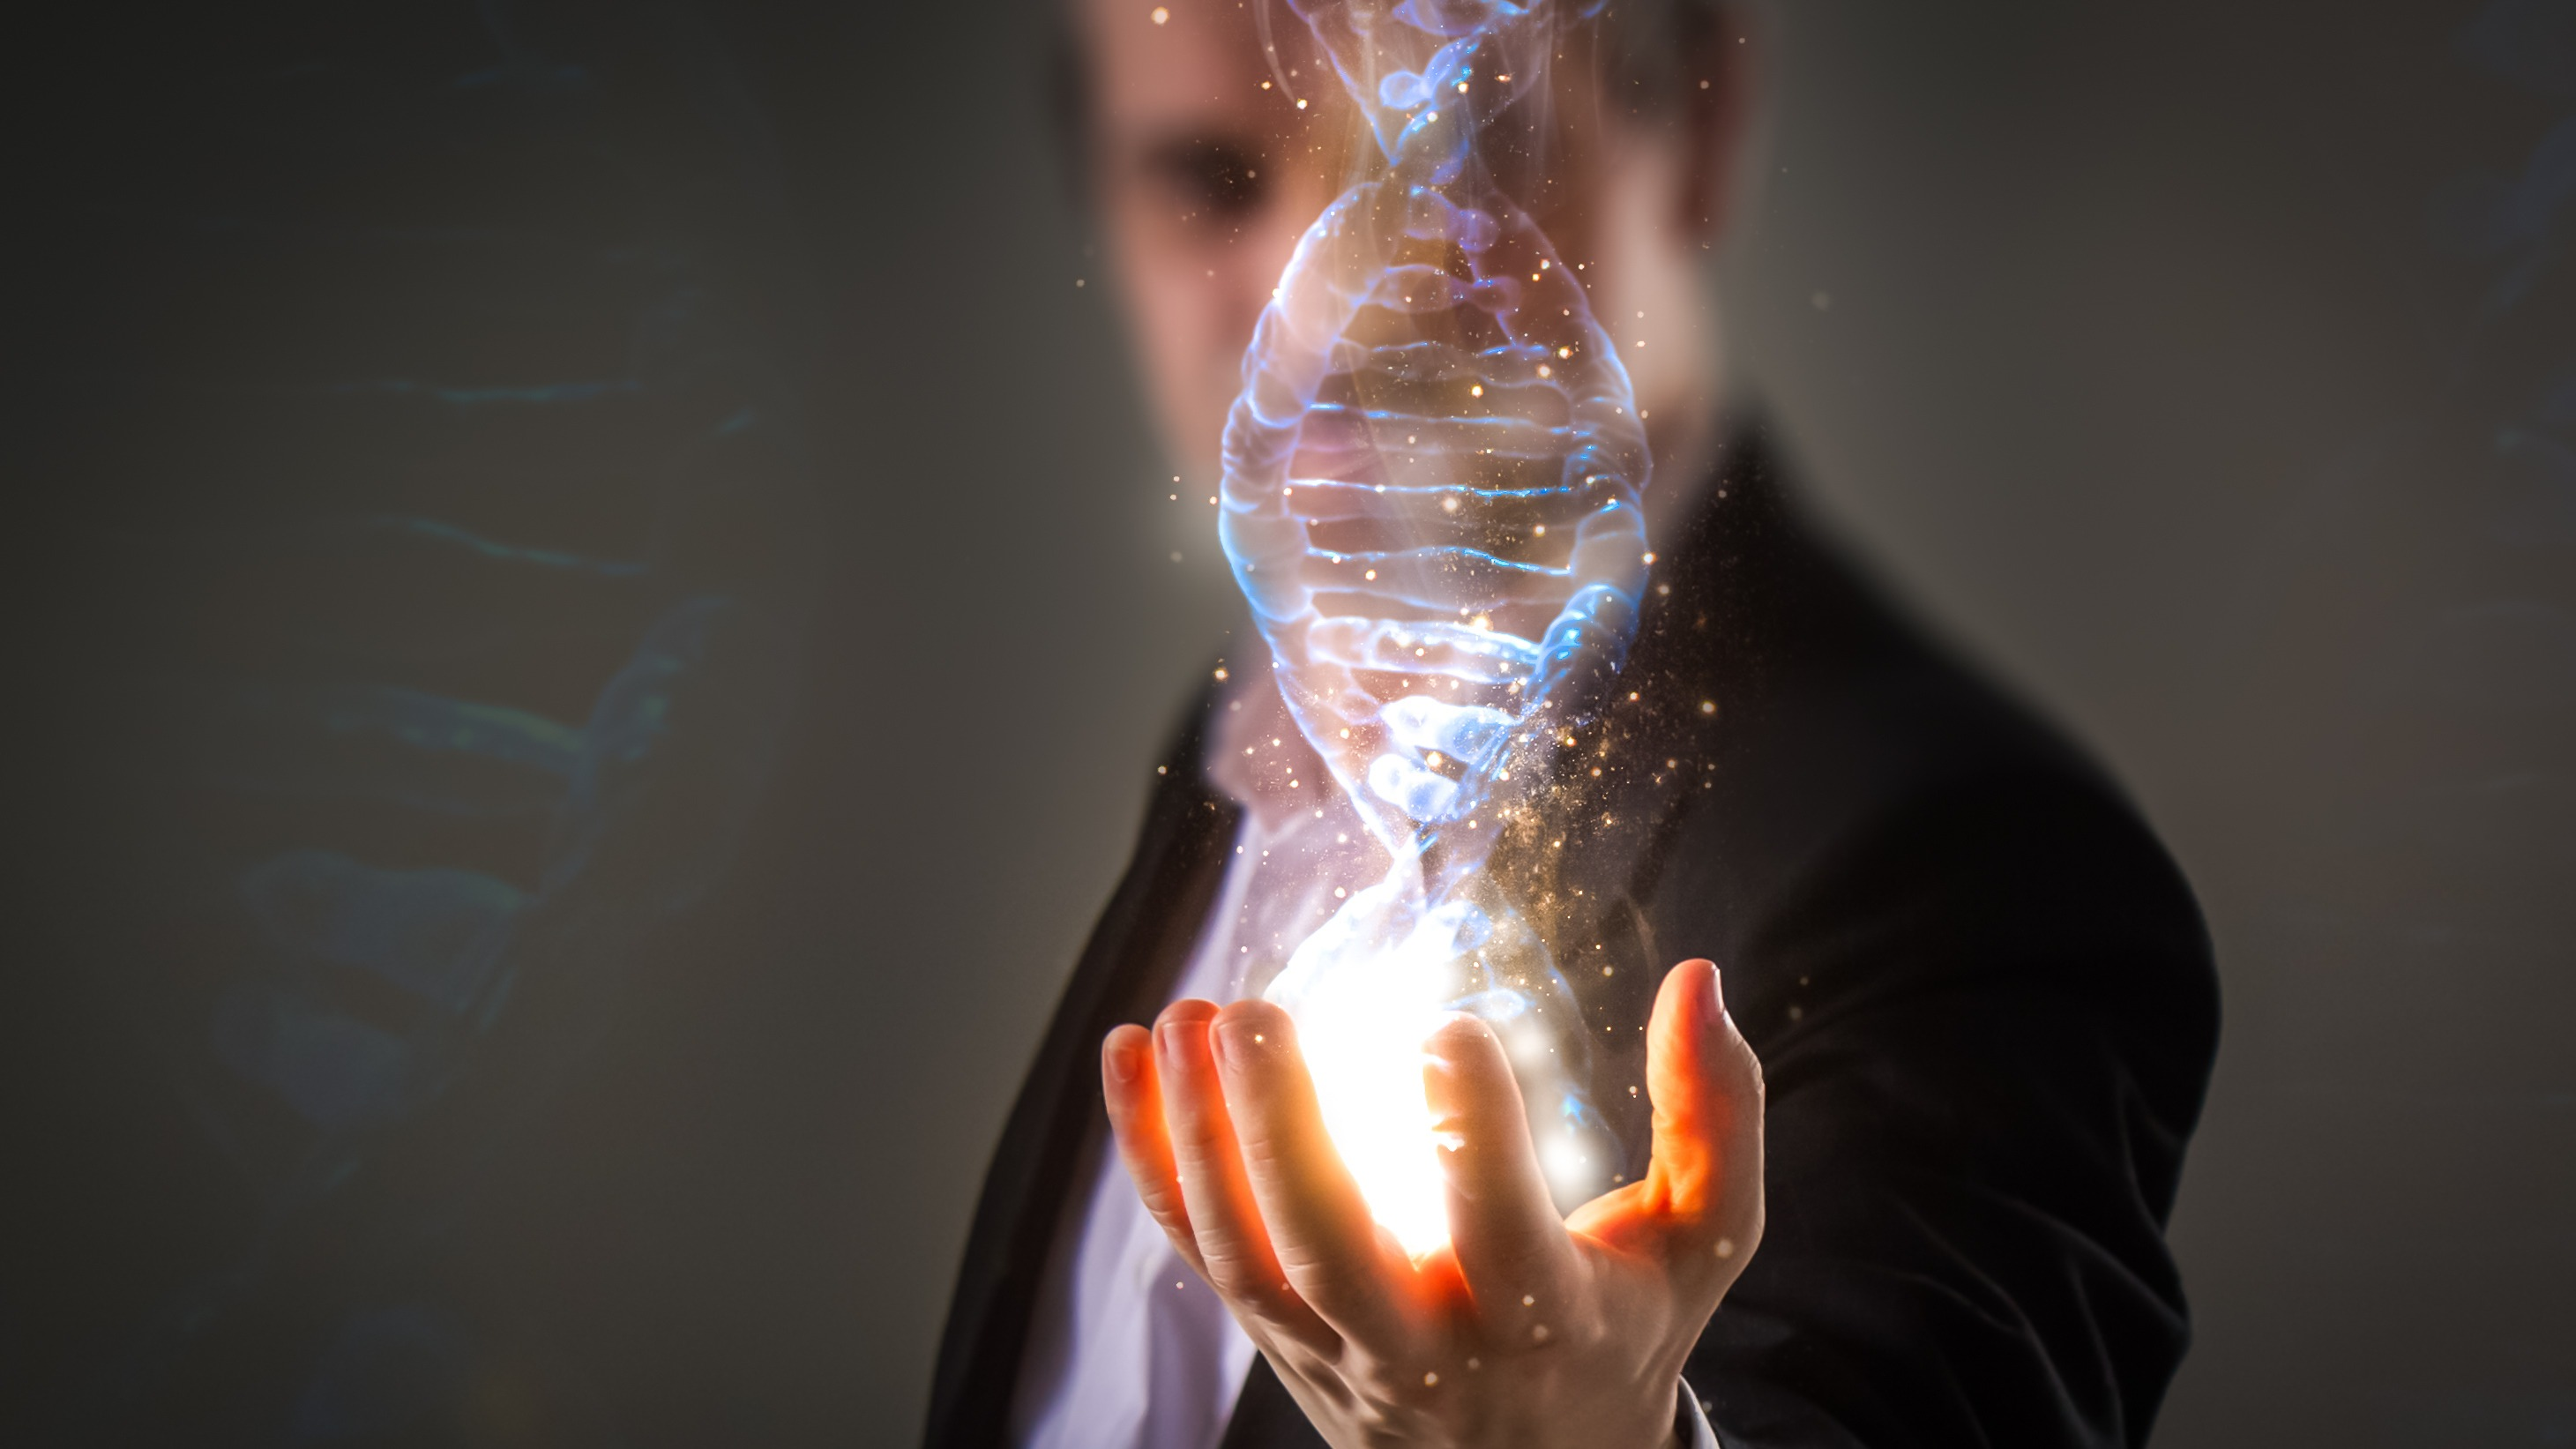 CRISPR Has Started Genetic Engineering on Humans and Food